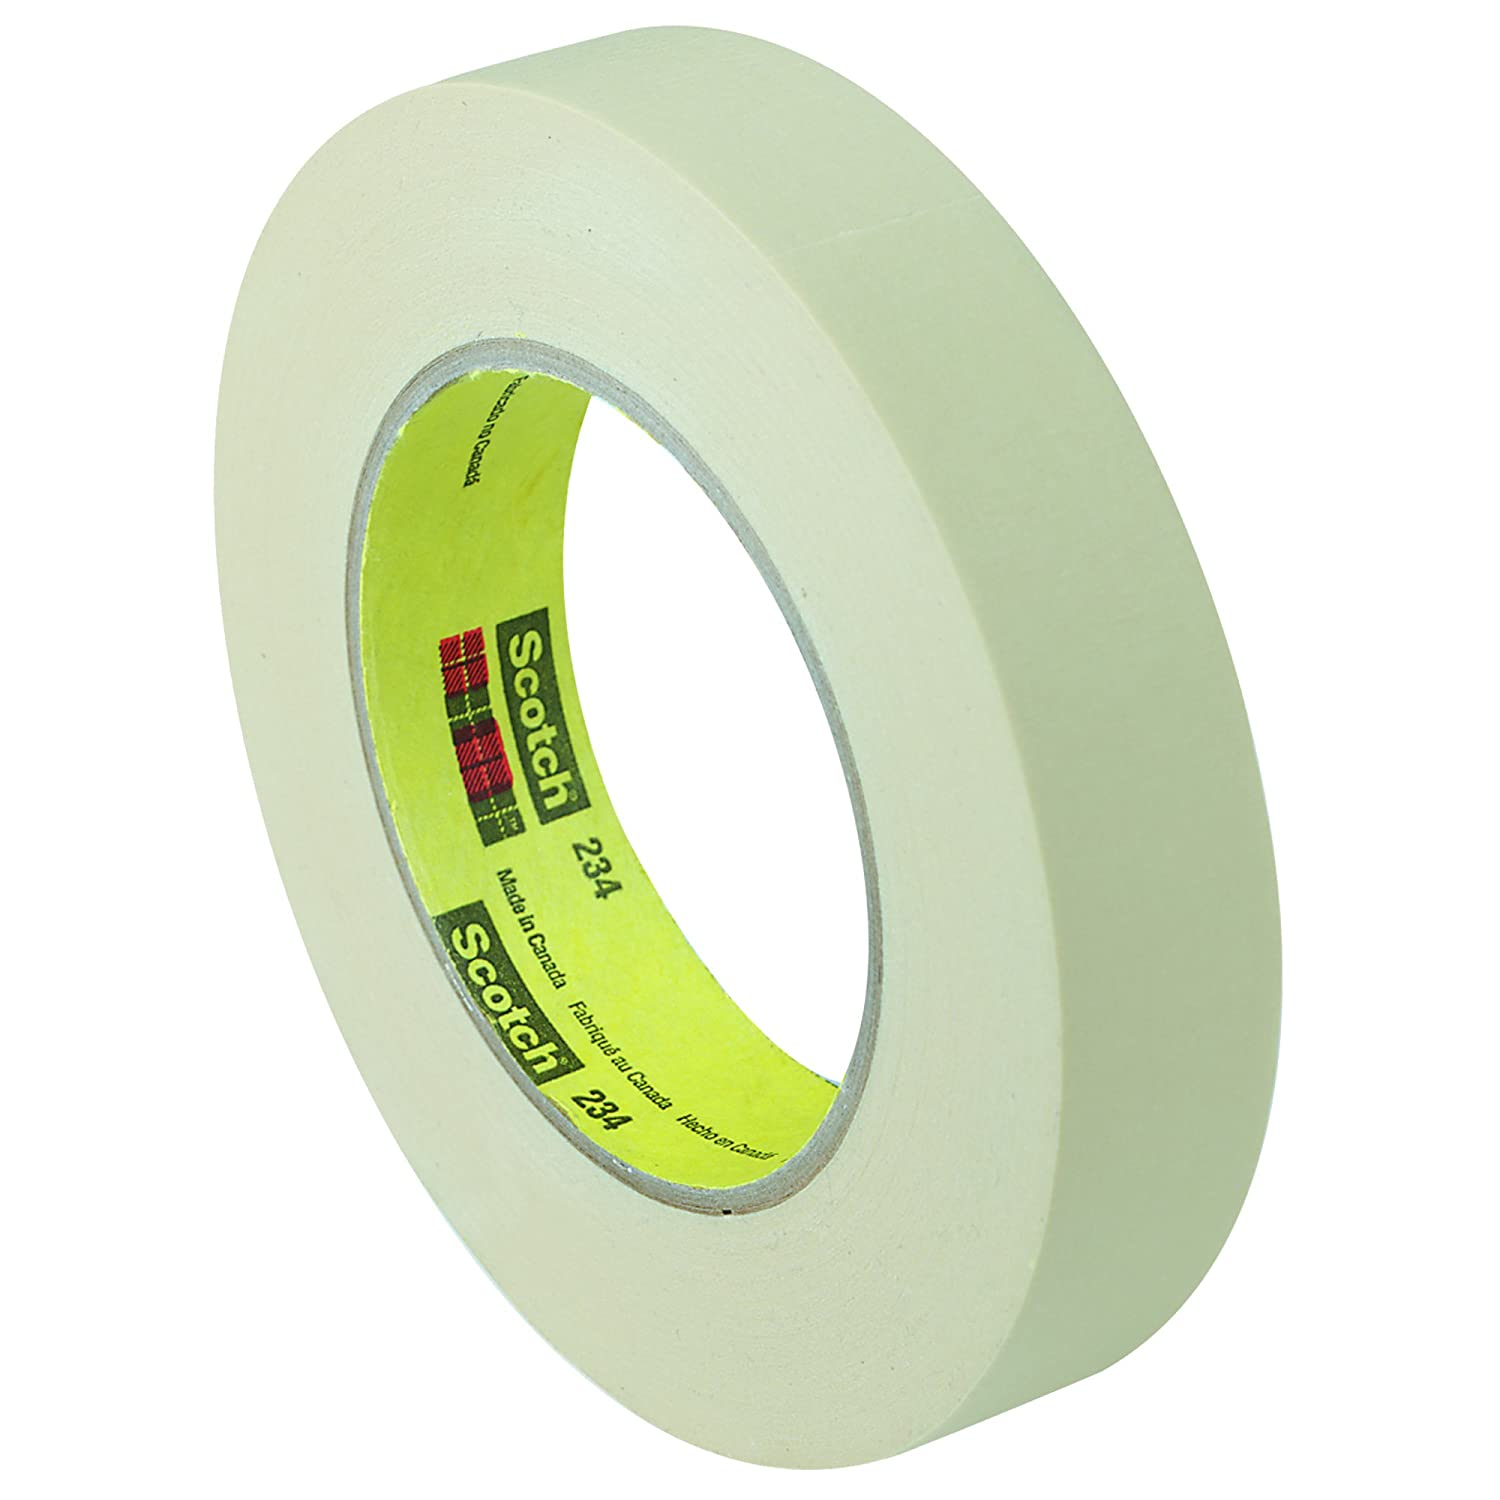 Scotch 23412 General Purpose Masking Tape 234, .47 x 60yds, 3 Core, Natural (MMM23412) by Scotch B009NKS08M